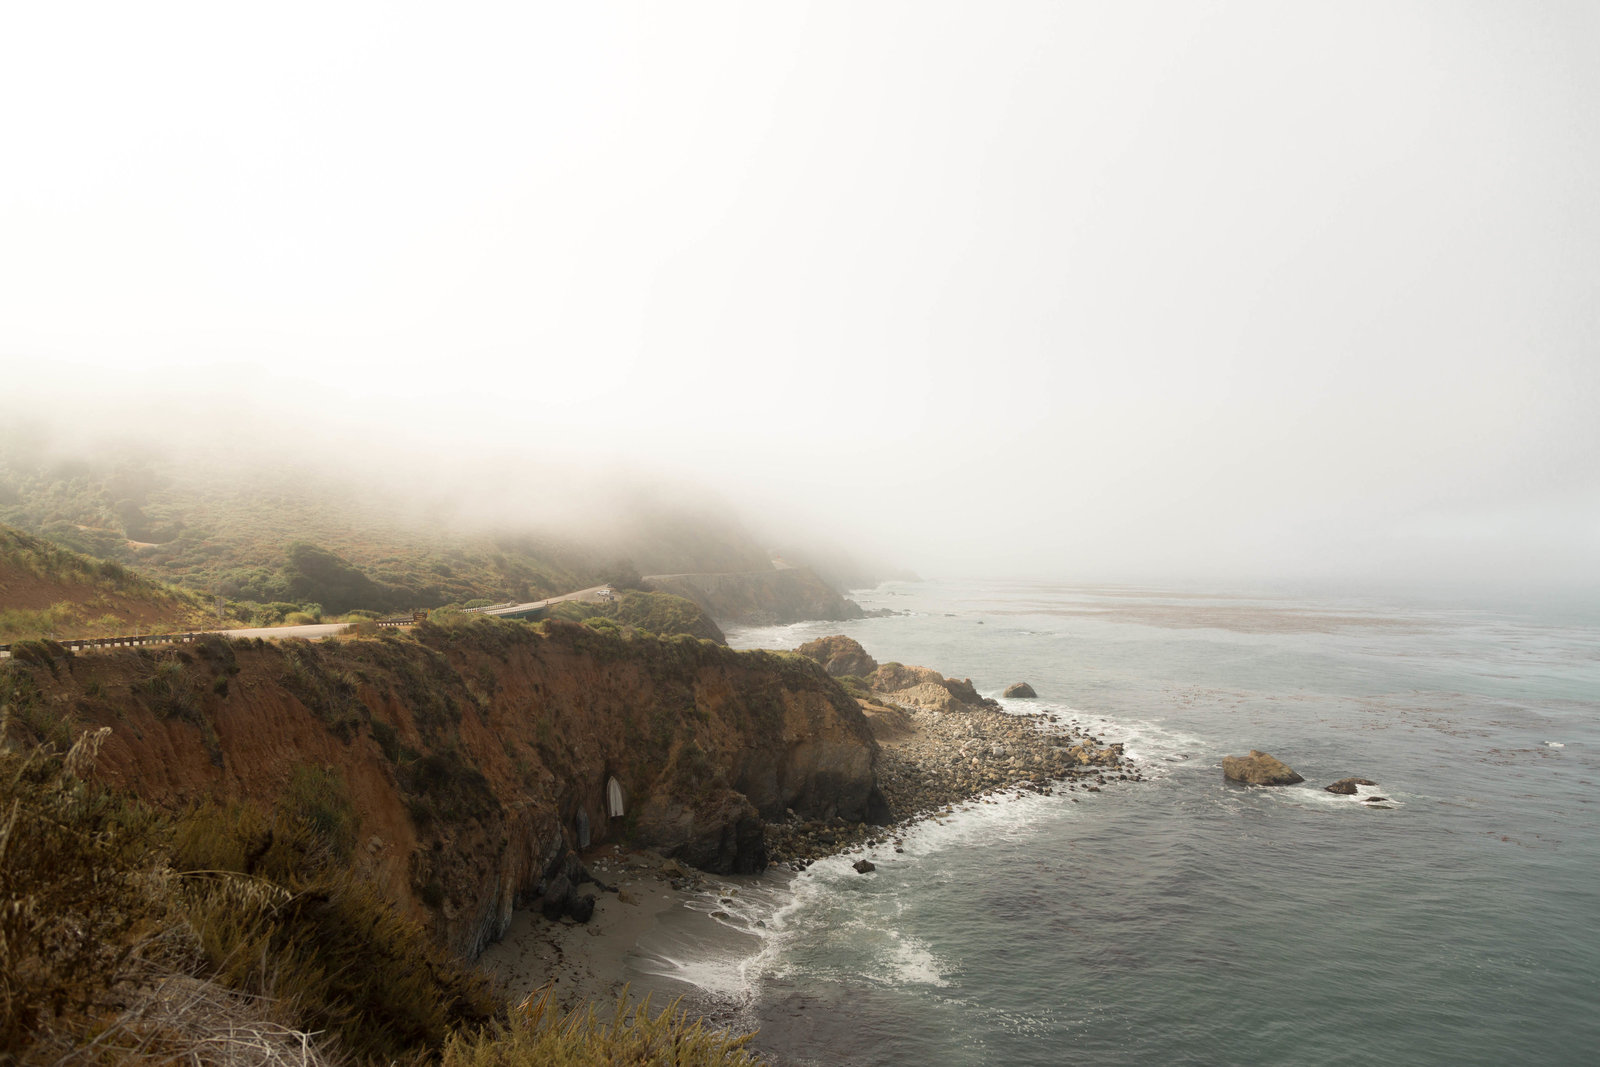 Atlanta Wedding Photographer Christina Bingham takes photo of West coast in Big Sur